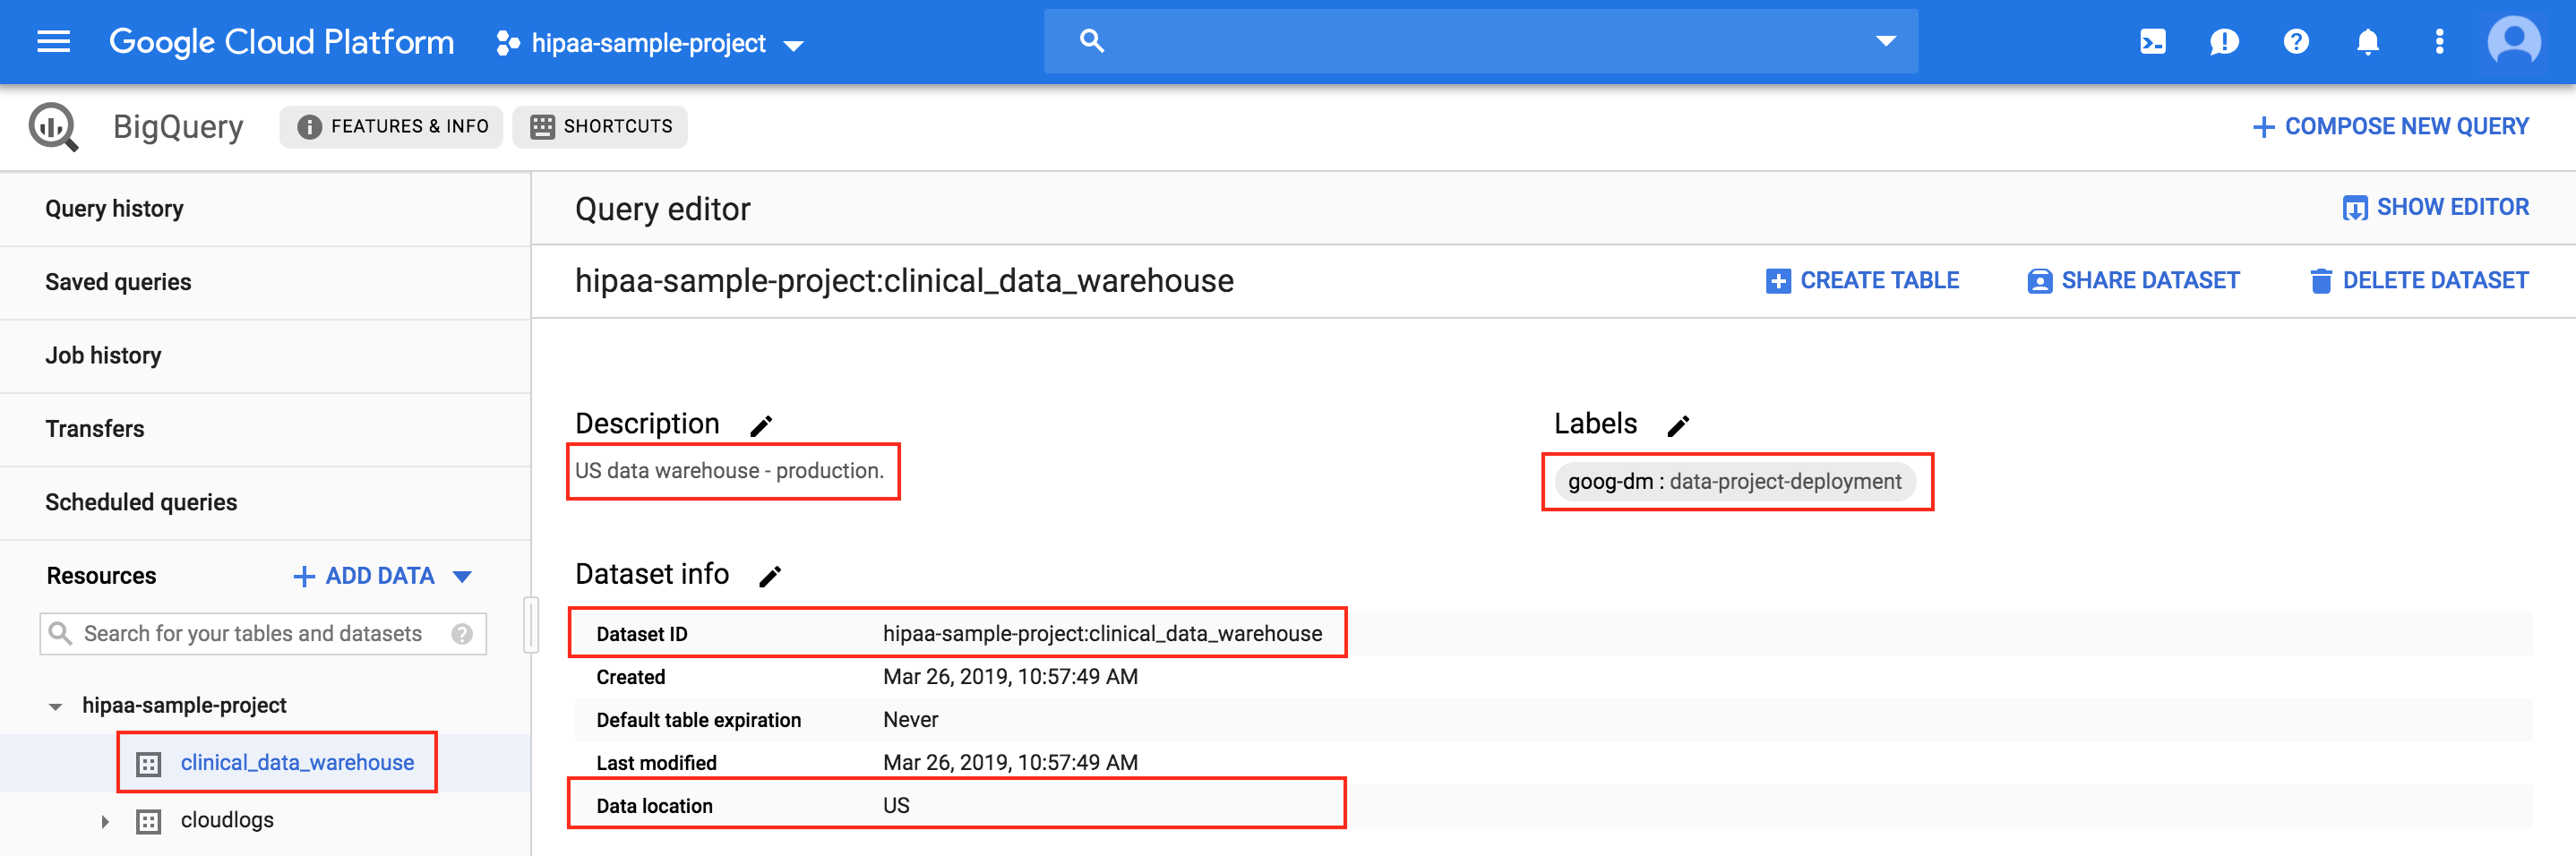 BigQuery shows the newly created datasets